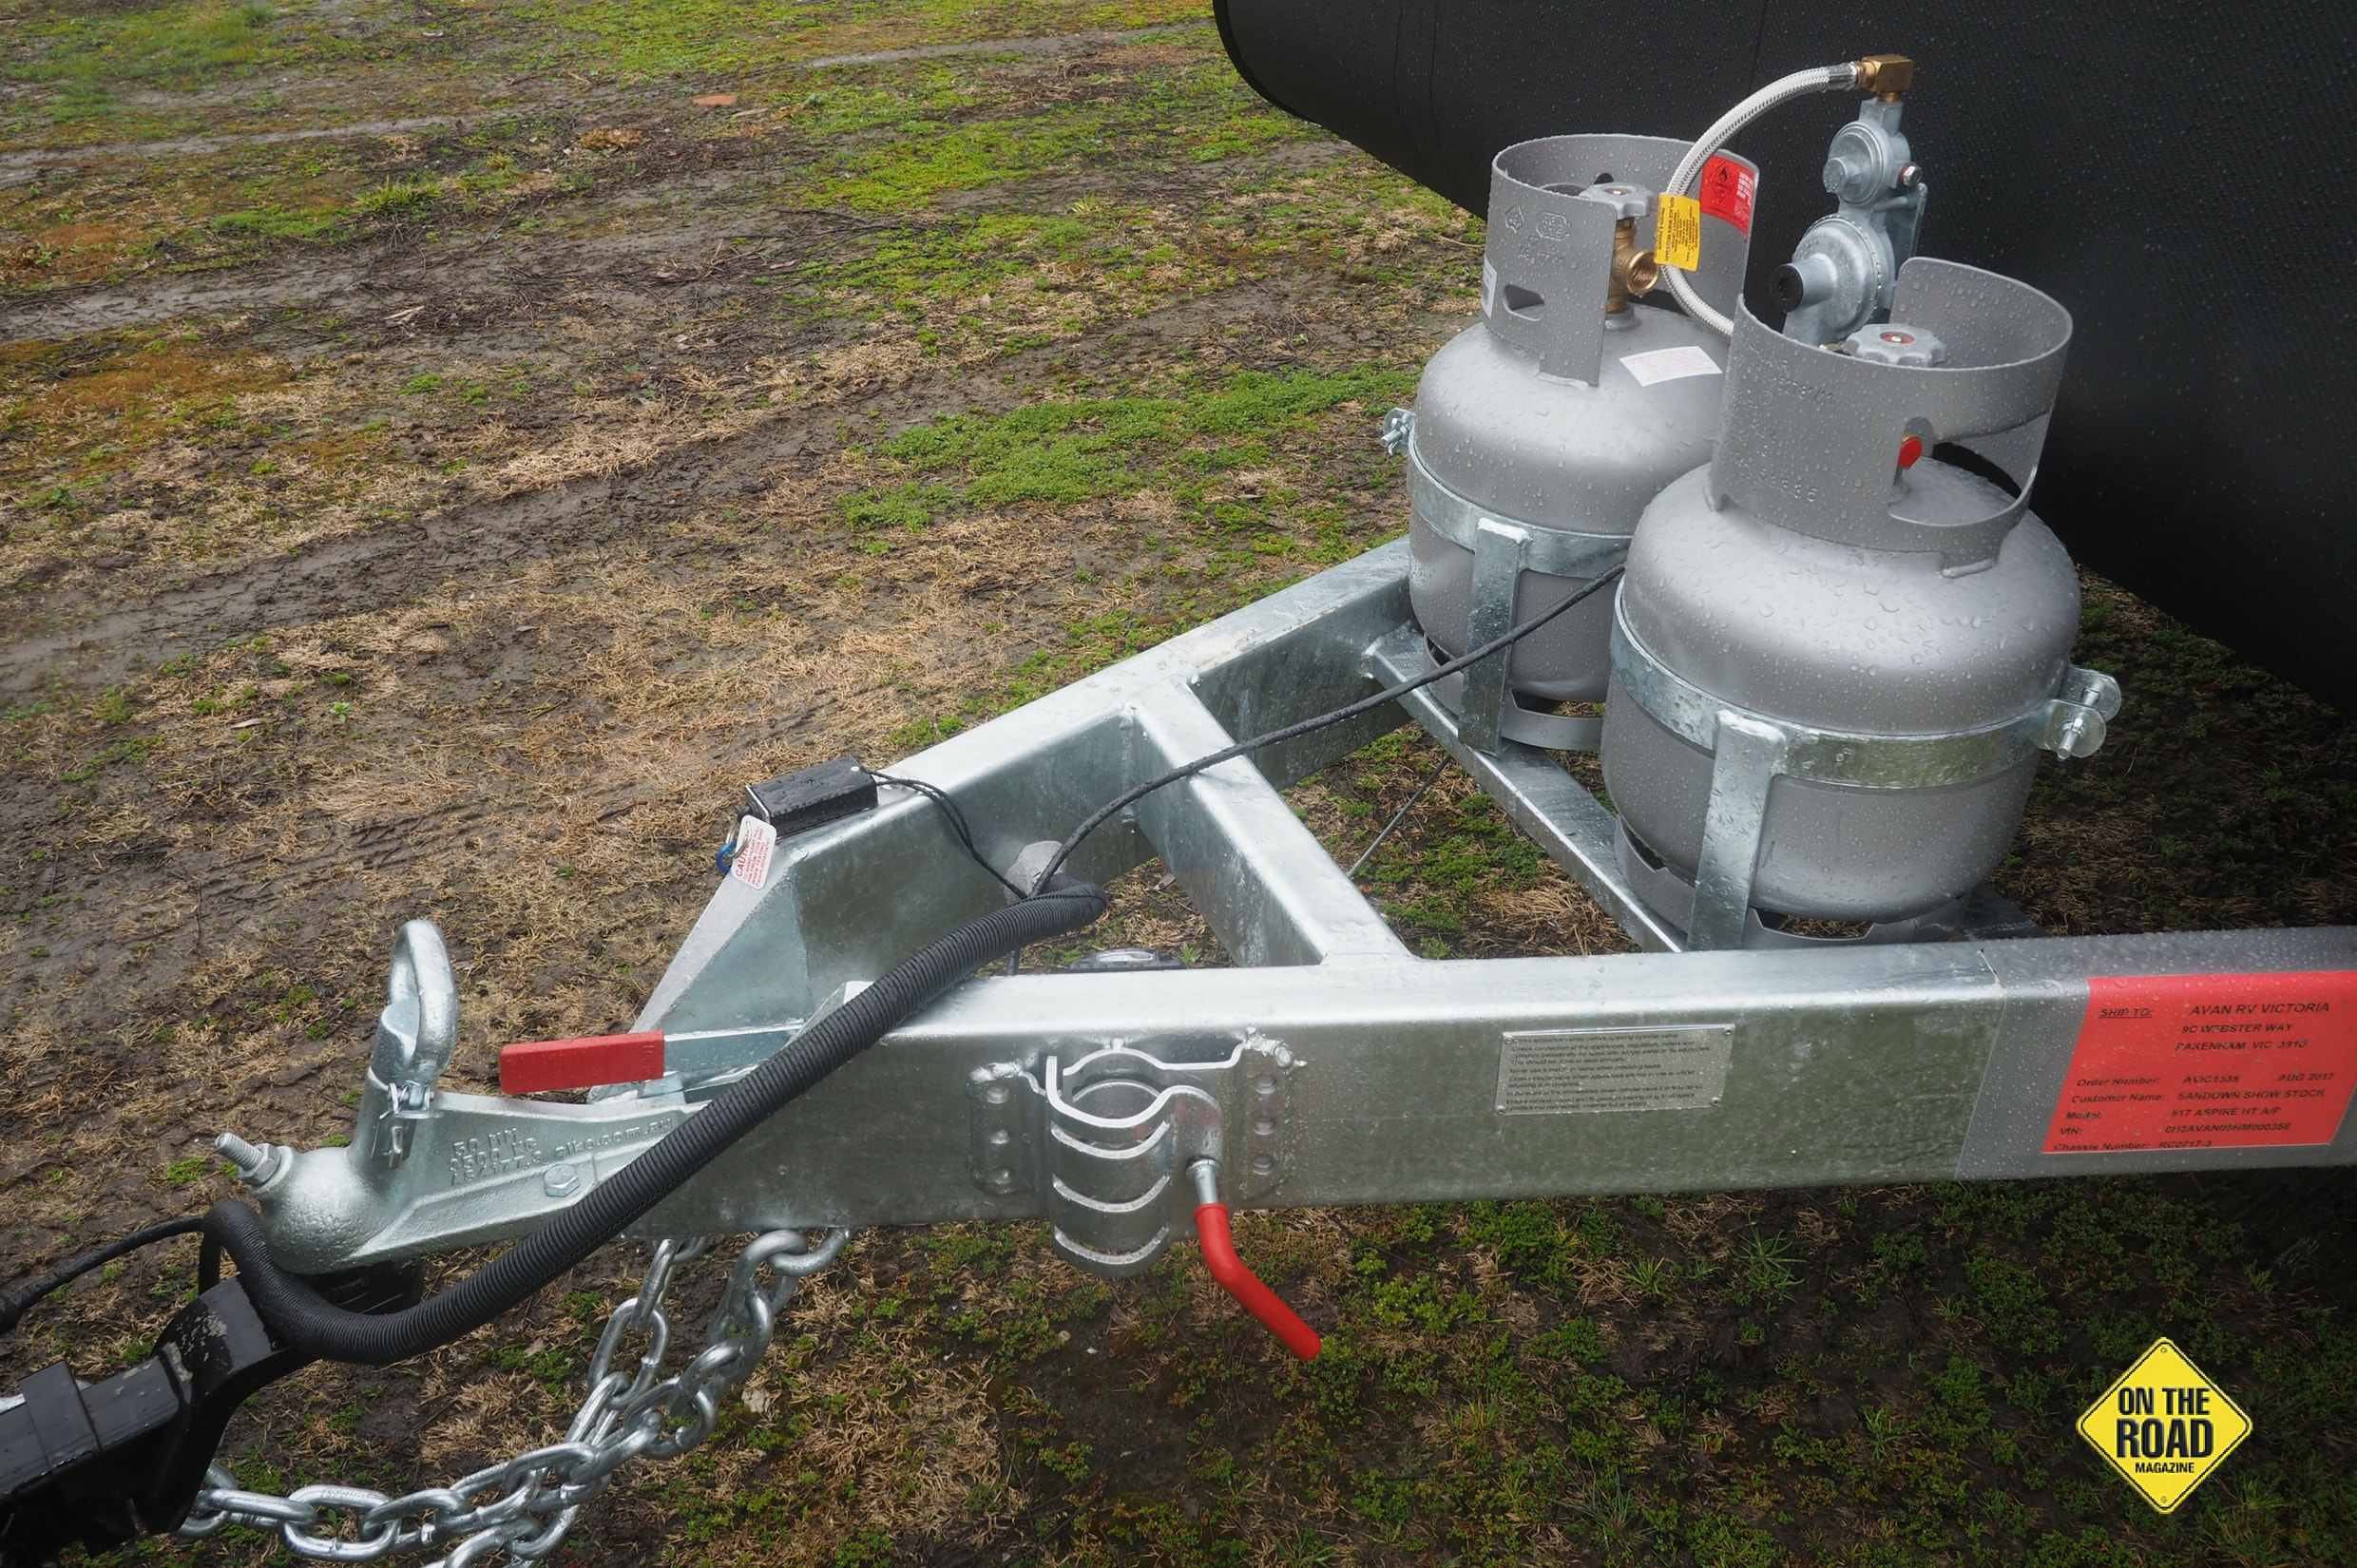 The AL-KO A-frame includes stability control break away system and twin gas bottles